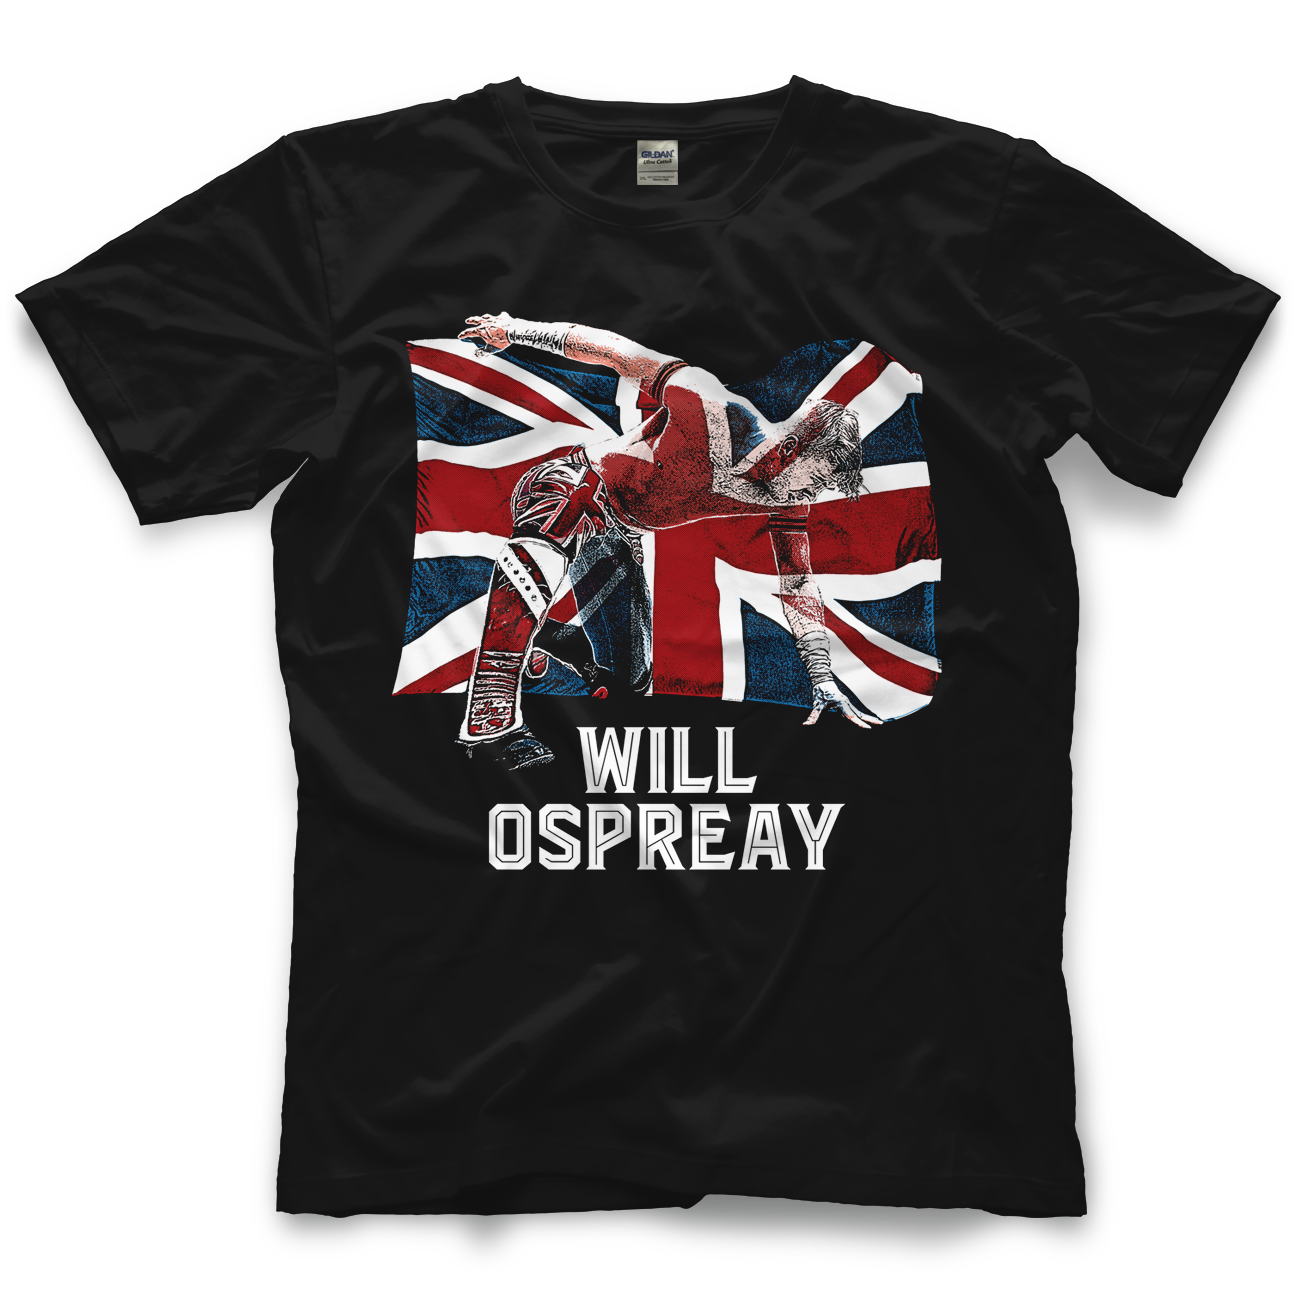 Union Jack - Will Ospreay